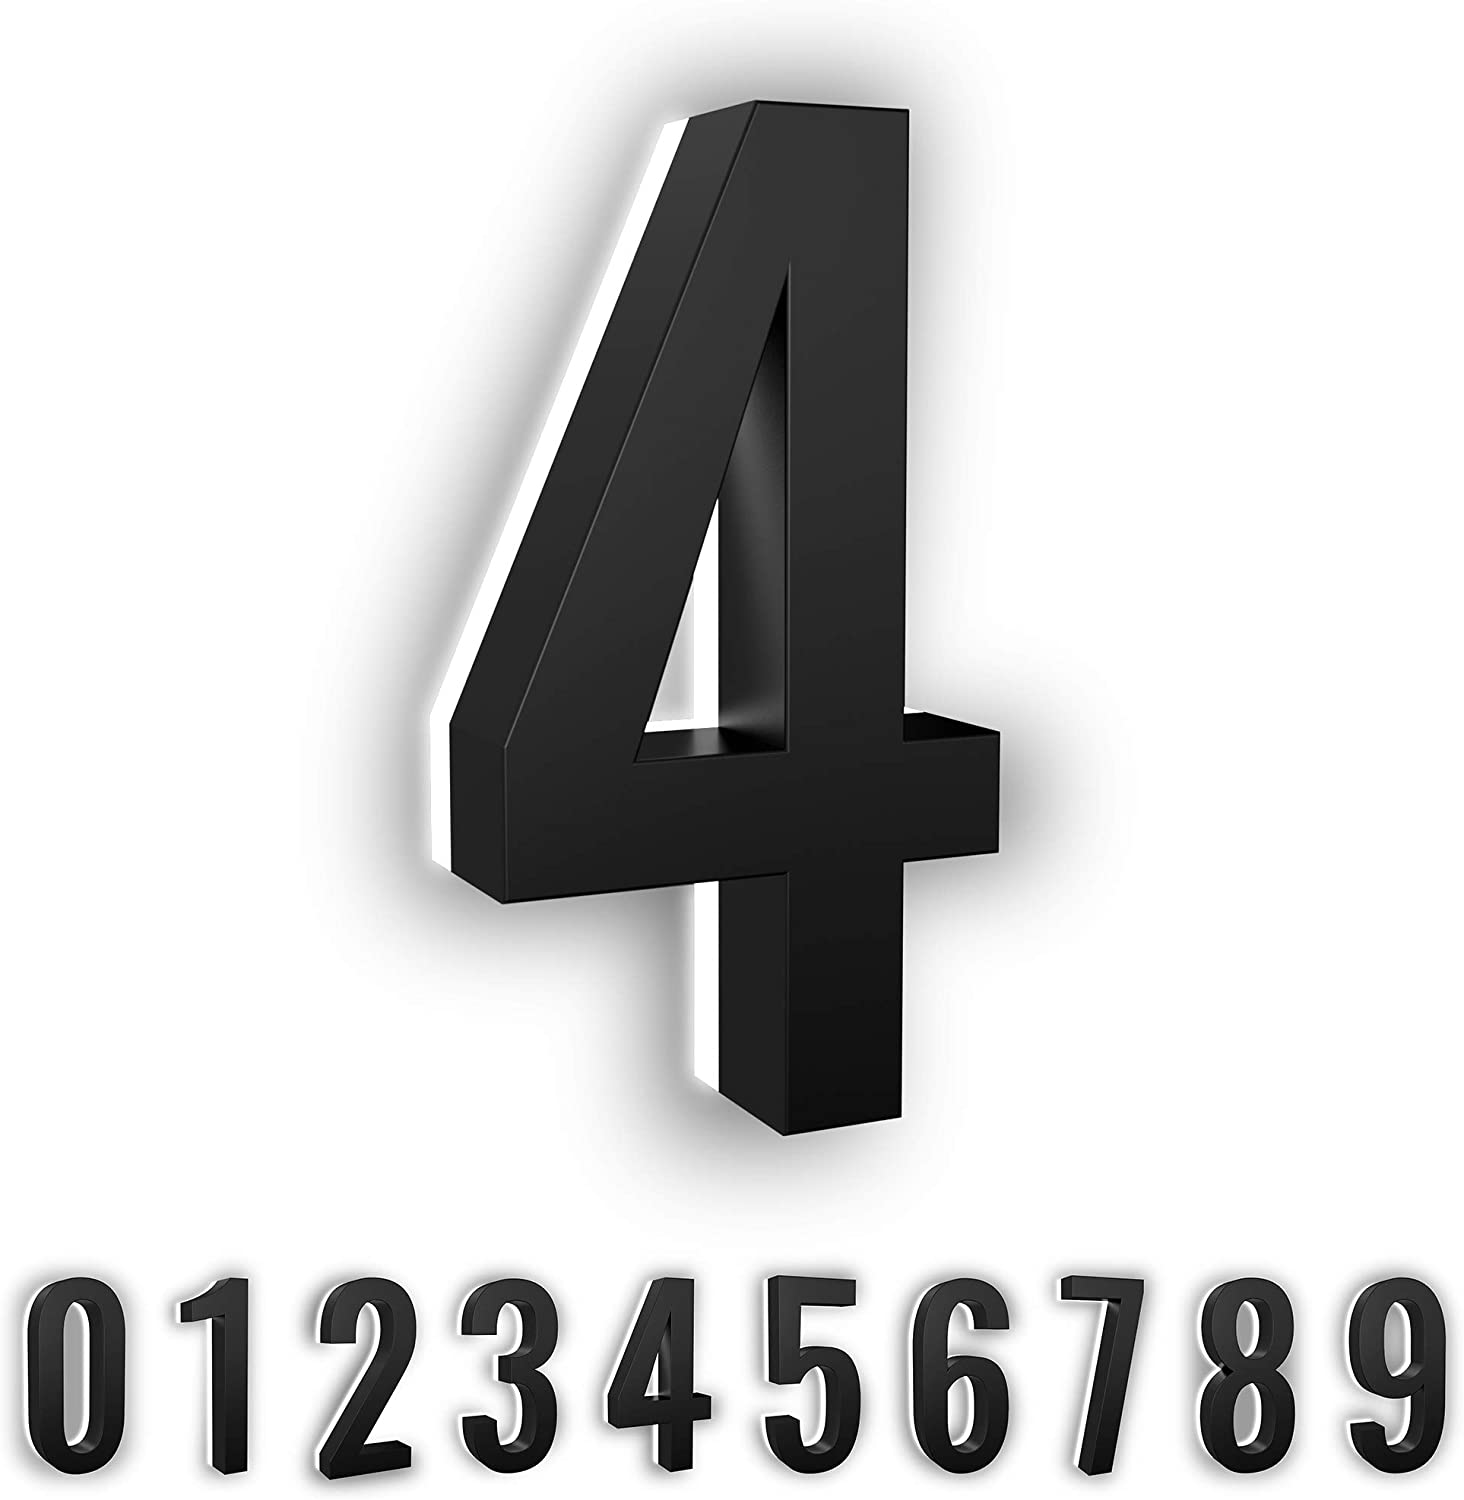 7-Inch Low-Voltage Backlit LED Address Numbers by LN LUMANUMBERS, Durable Brushed Steel Lighted House Numbers, Weather-Proof, Modern Illuminated Floating Numbers (Black, 4)